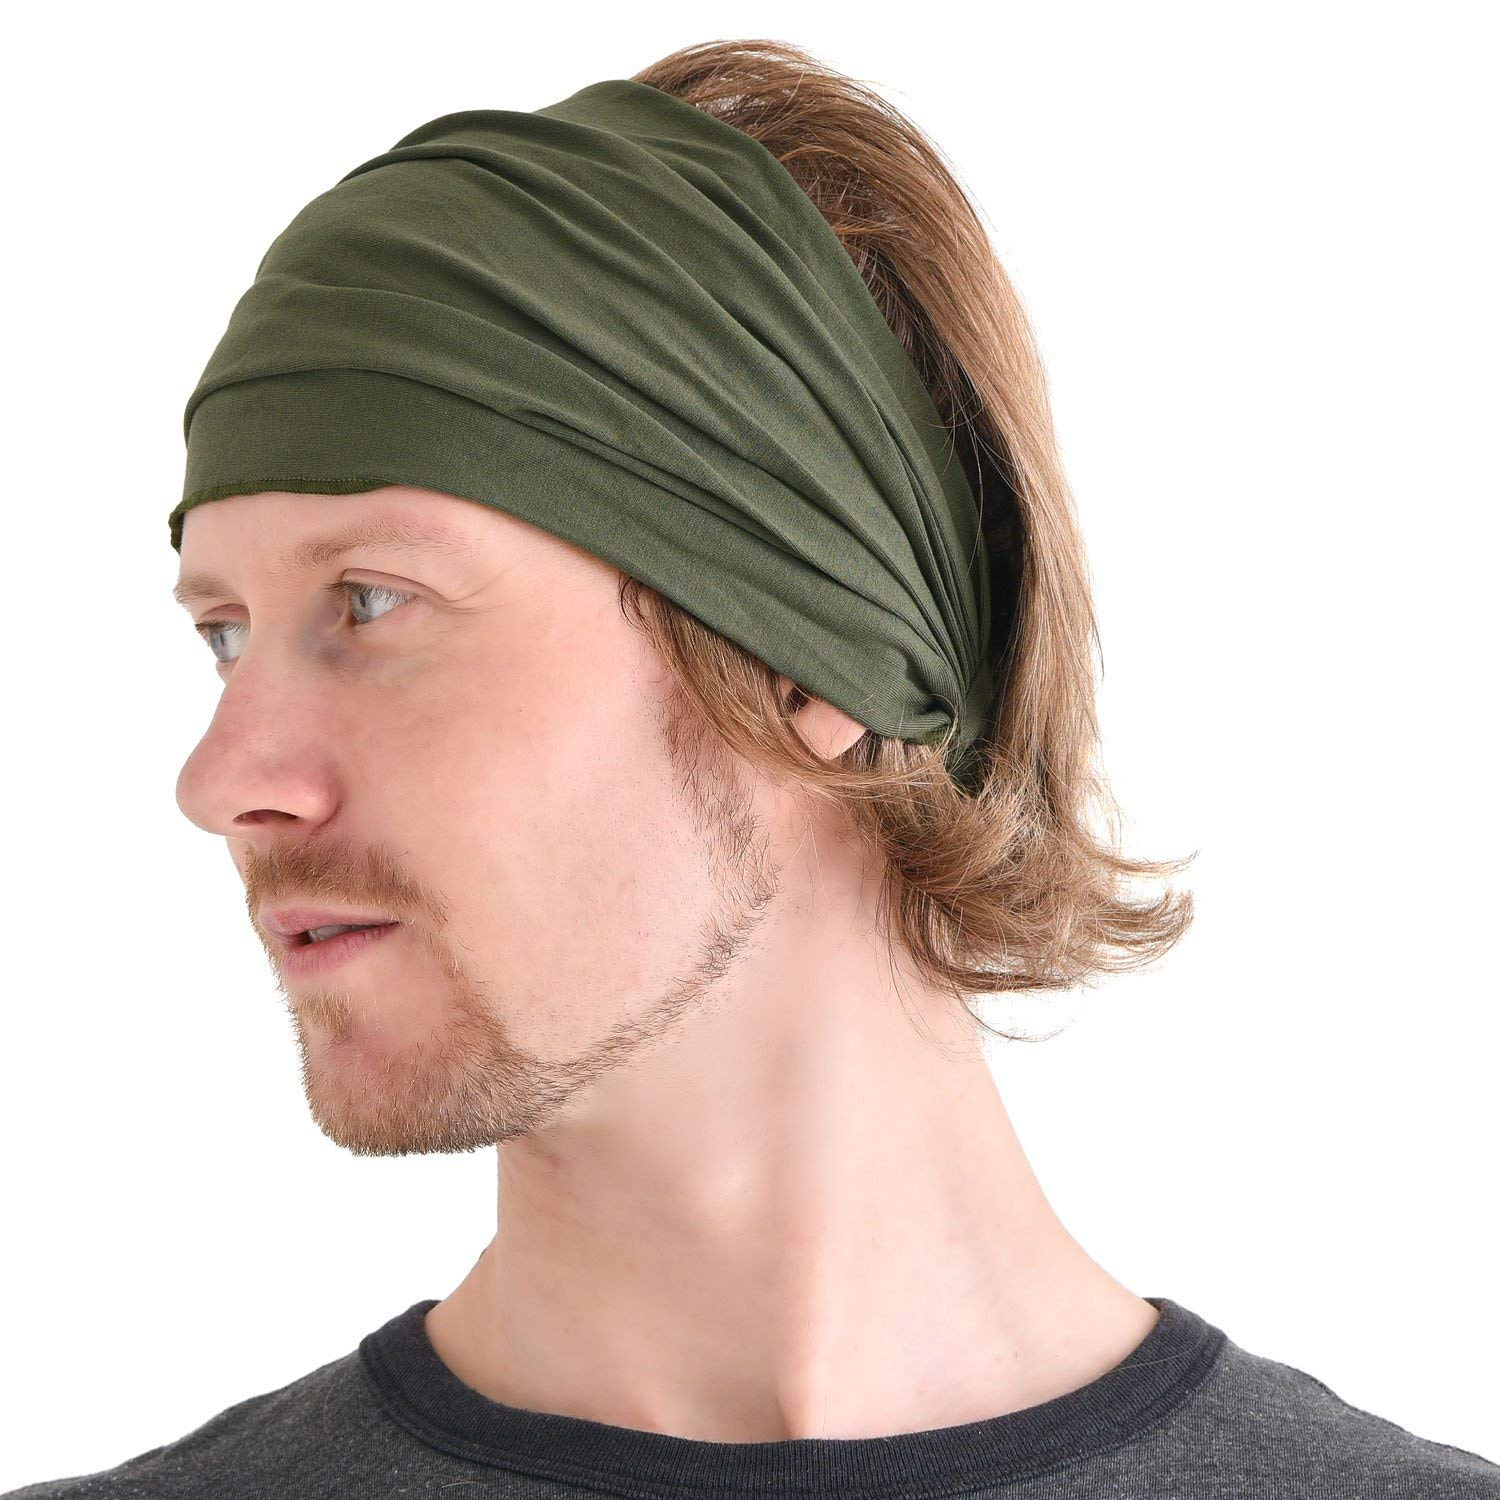 Buy Casualbox mens Head cover Band Bandana Stretch Hair Style ... 8caae7513e8